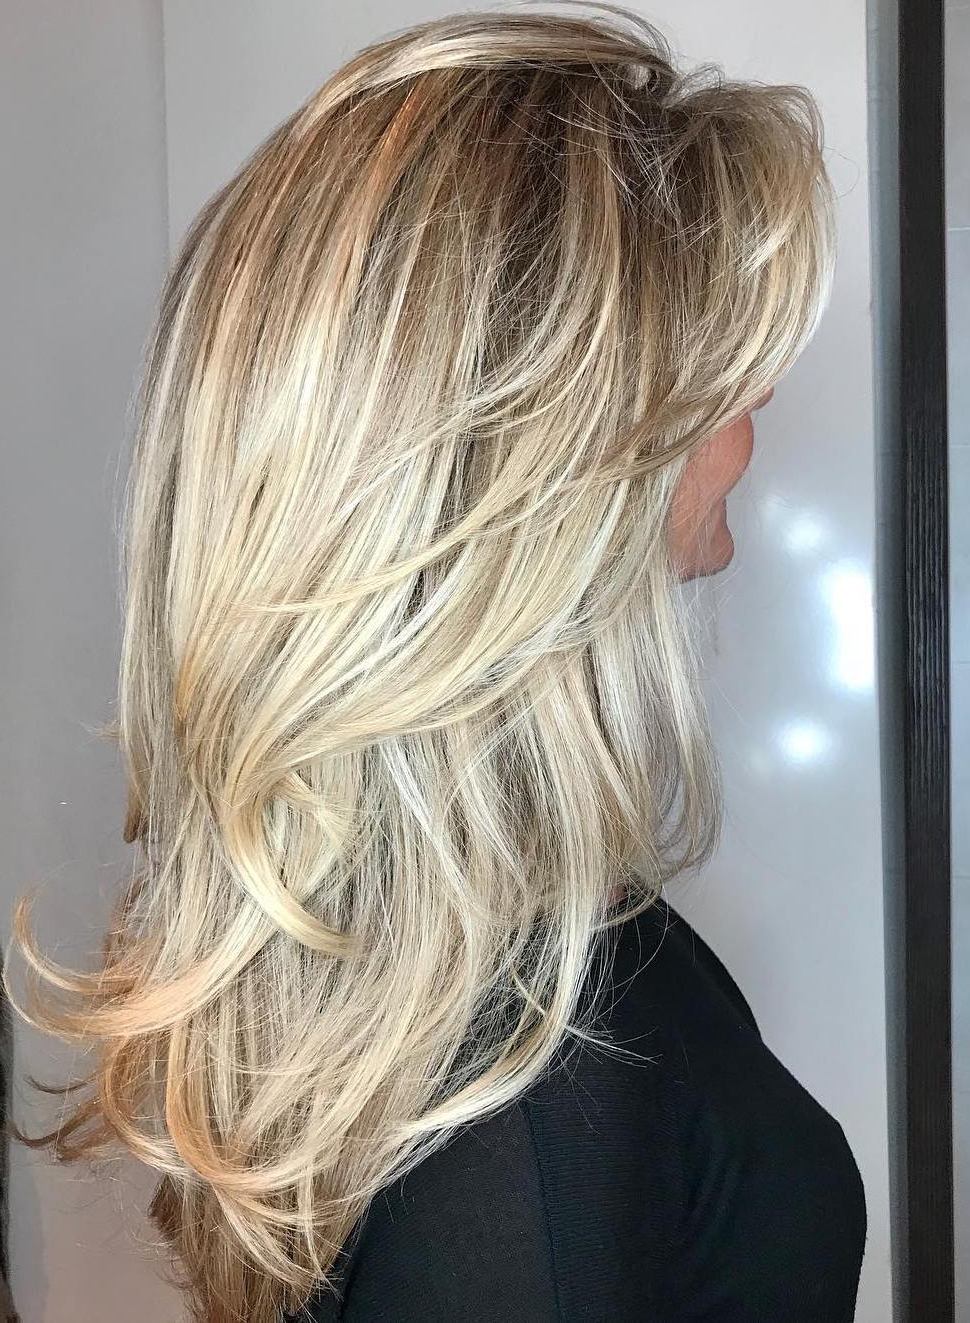 50 Cute Long Layered Haircuts With Bangs 2019 Intended For Well Liked Mid Back Brown U Shaped Haircuts With Swoopy Layers (View 3 of 20)